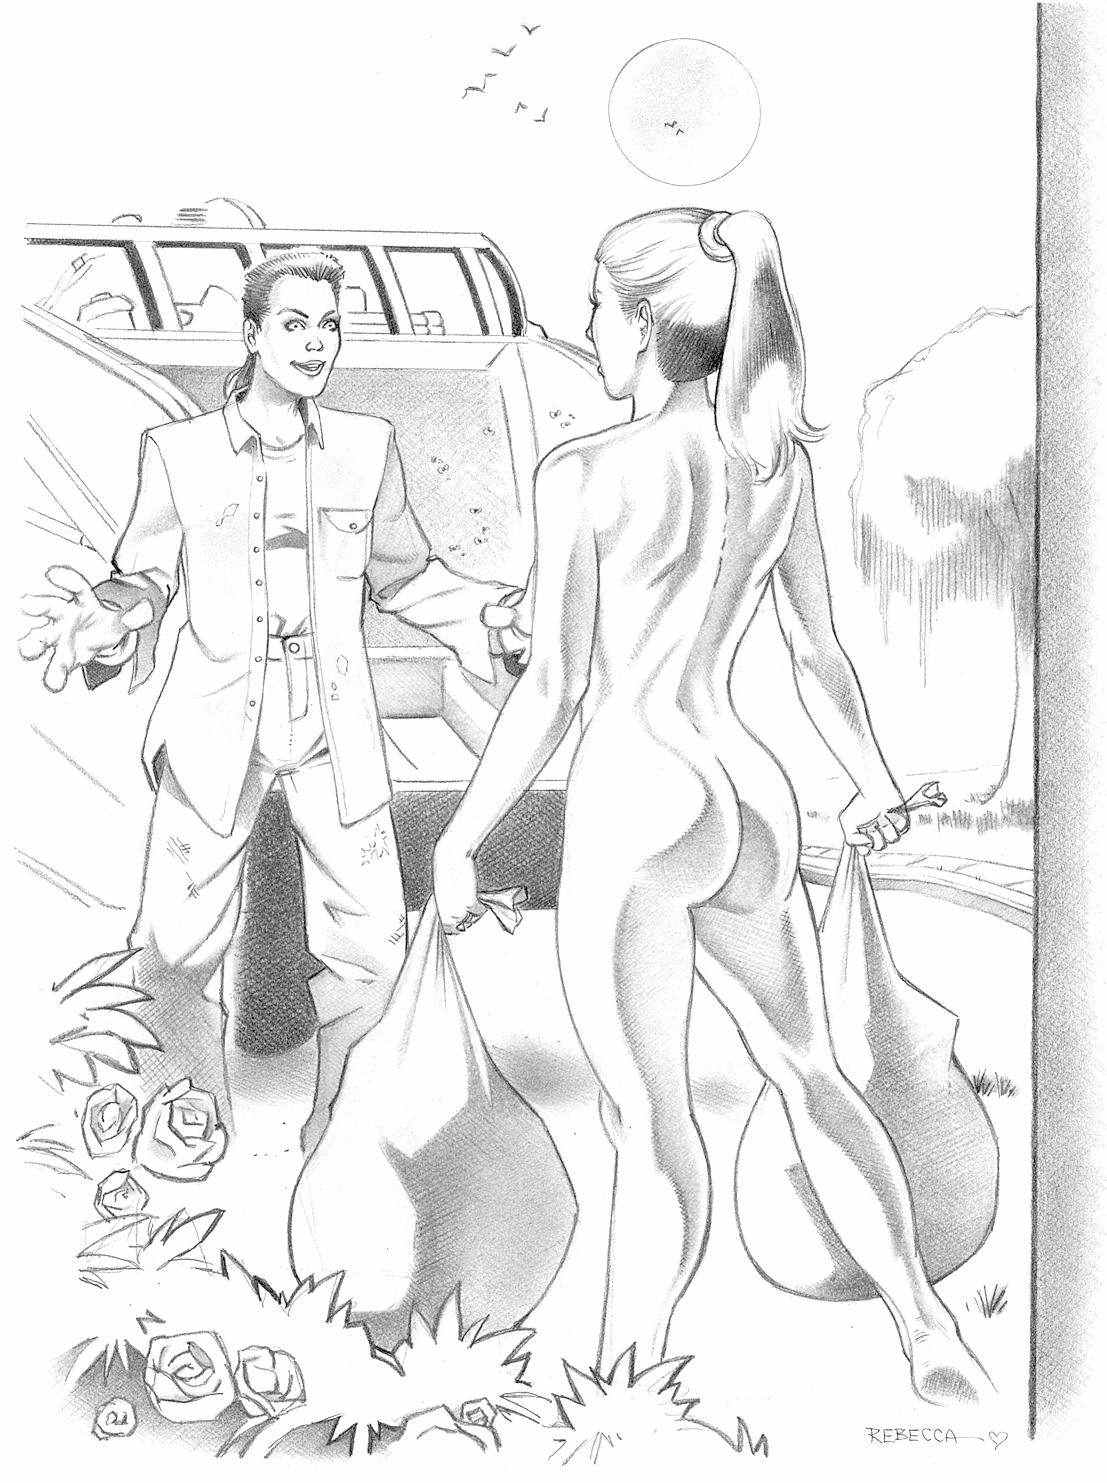 Extreme Kinky Porn Drawings - Sex slave comics. Very kinky and bizarre drawings.